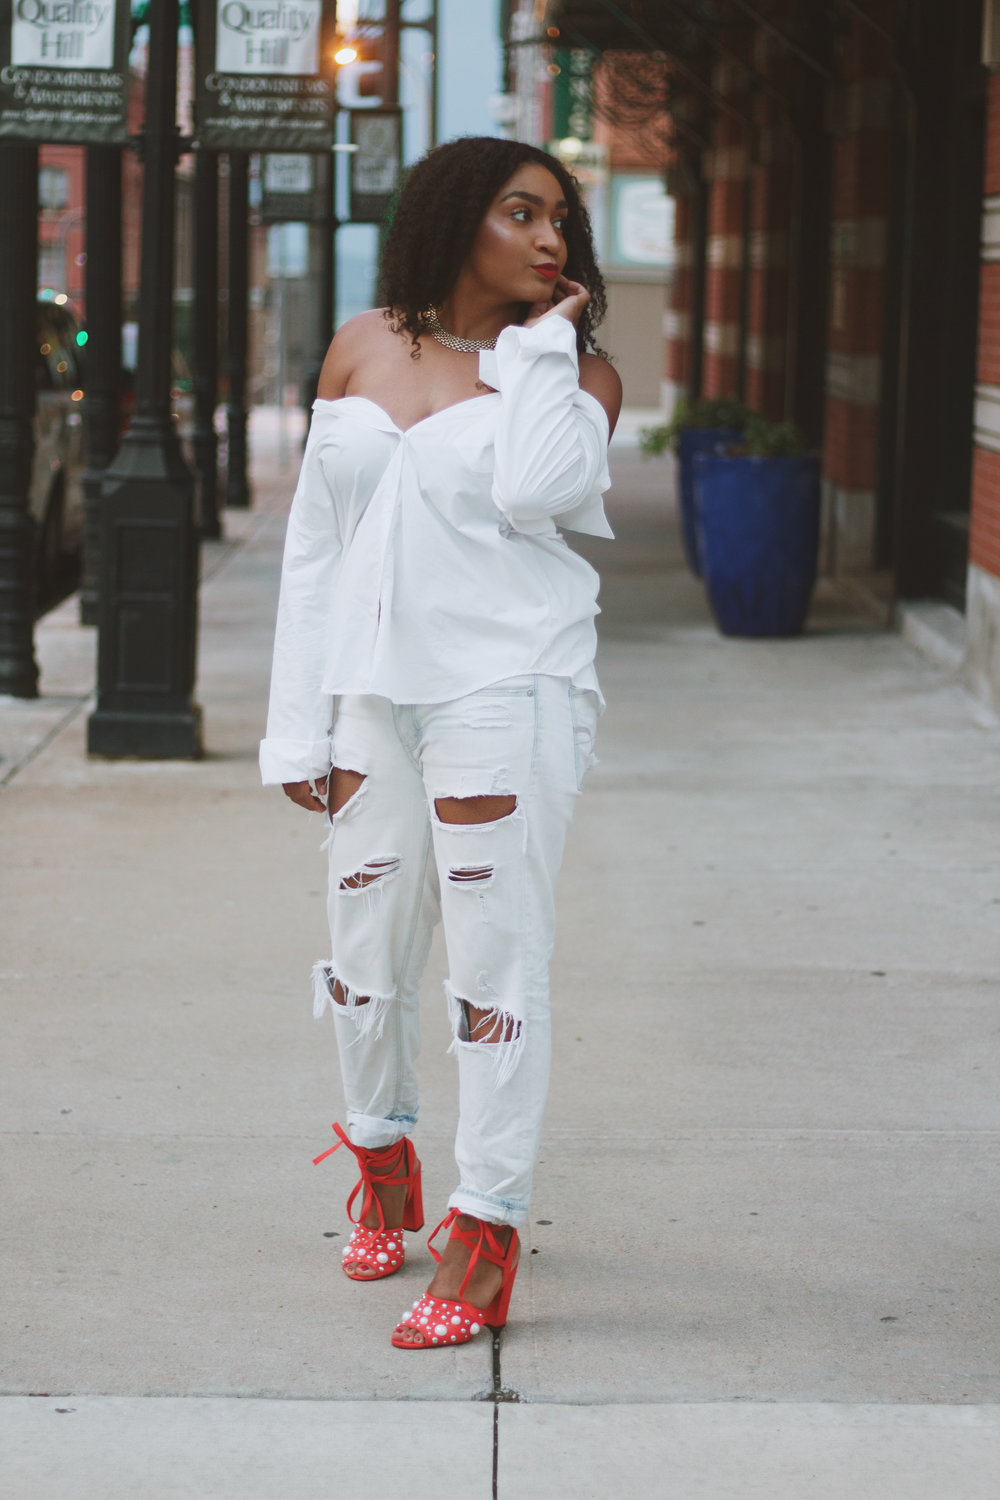 White shirt and boyfriend jeans with red block heels.